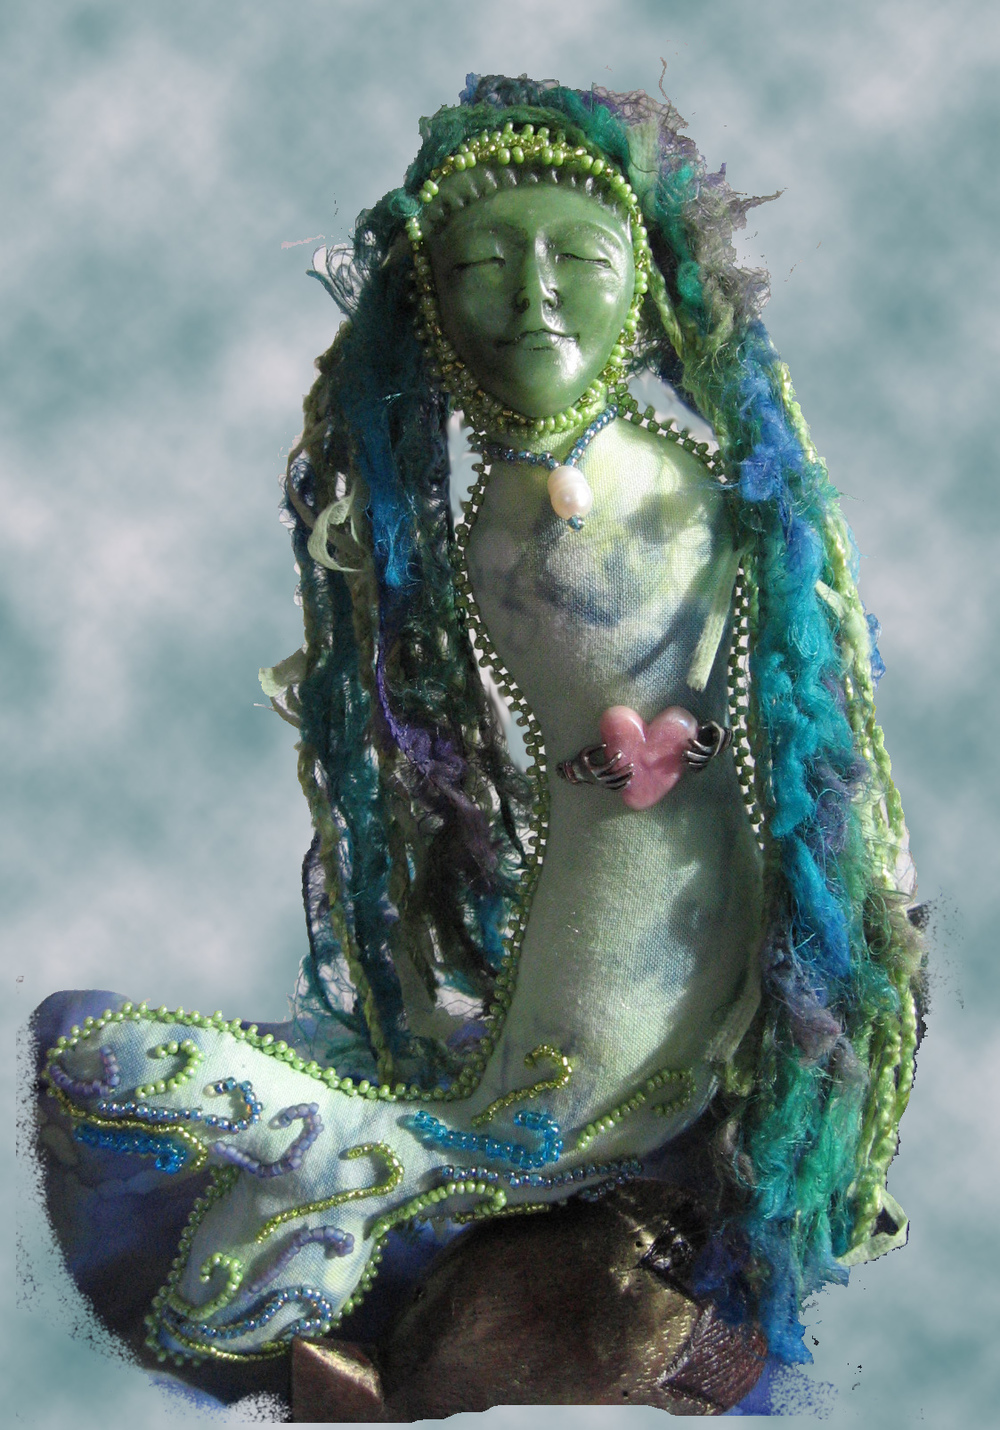 mermaid doll.jpg